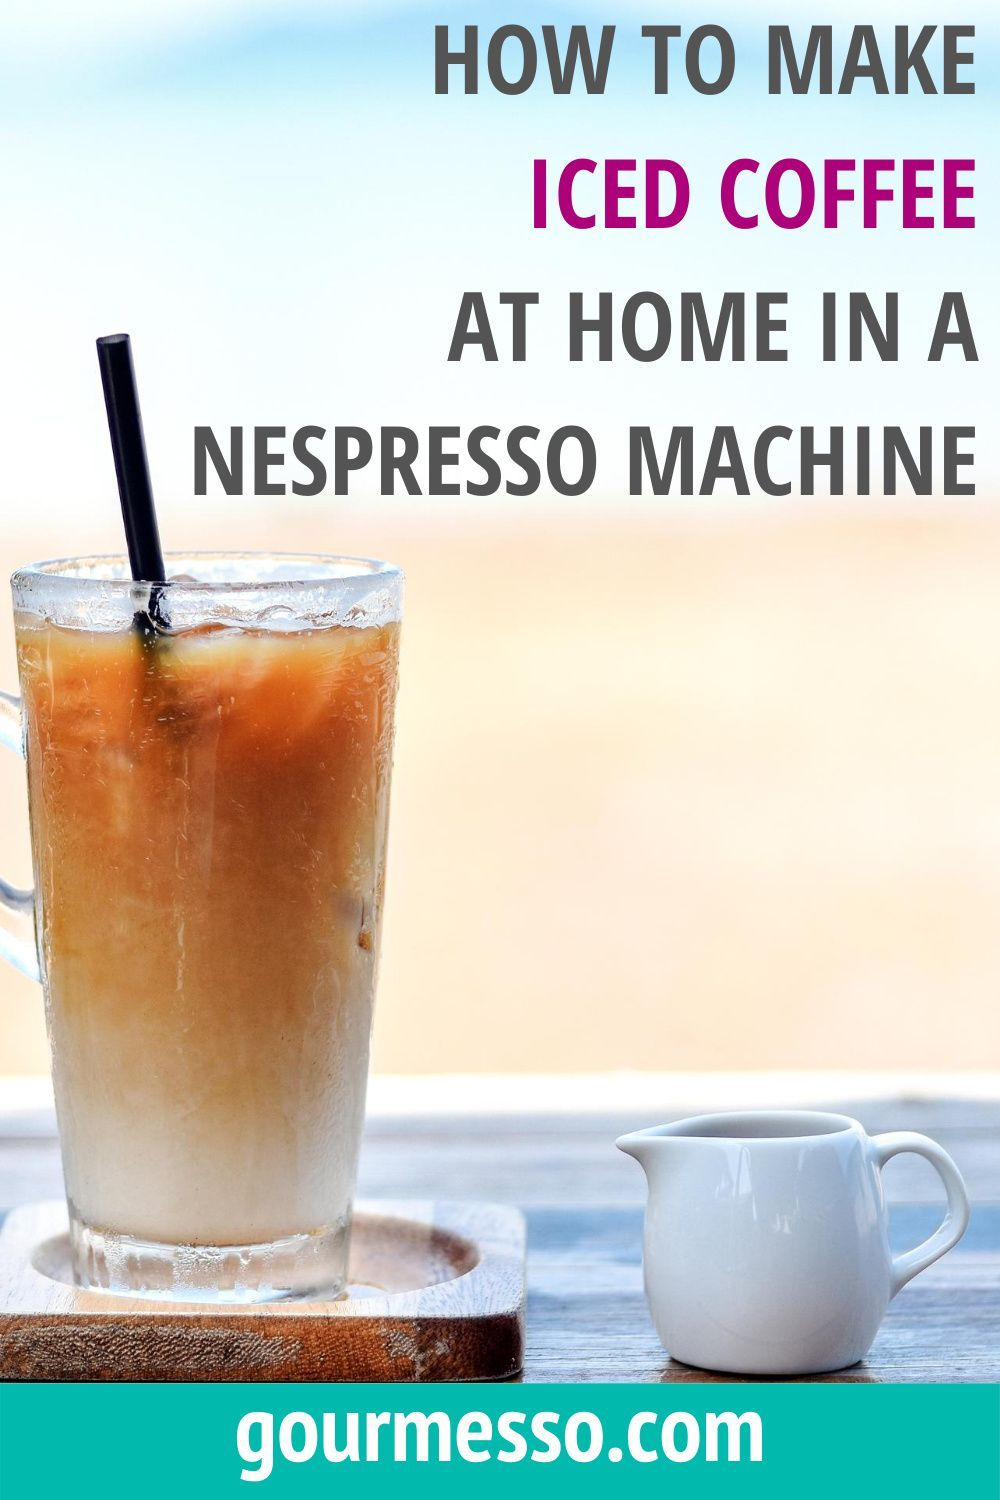 How To Make Iced Coffee With A Nespresso Machine In 2020 How To Make Ice Coffee Iced Coffee Iced Coffee At Home